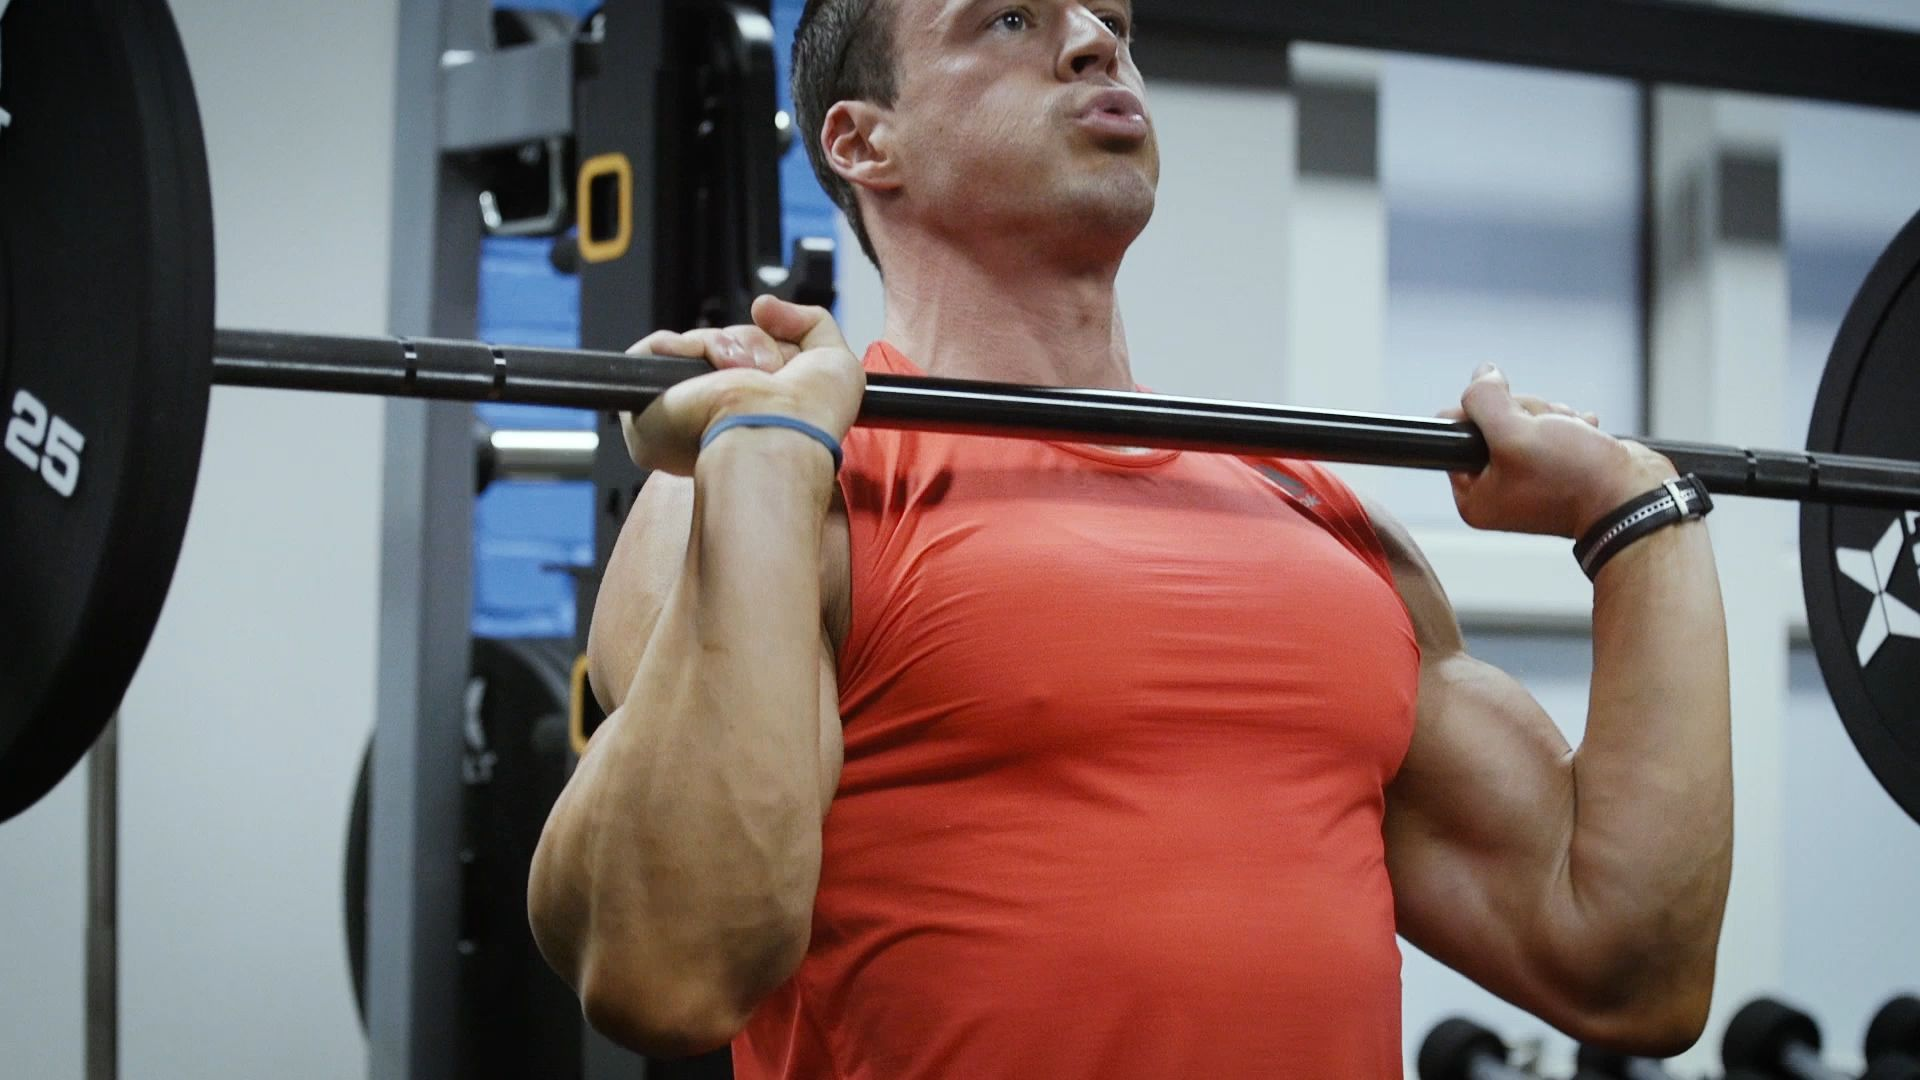 Shoulder Workouts: Get Shoulders Like Sylvester Stallone With This Action Hero Jacked Workout